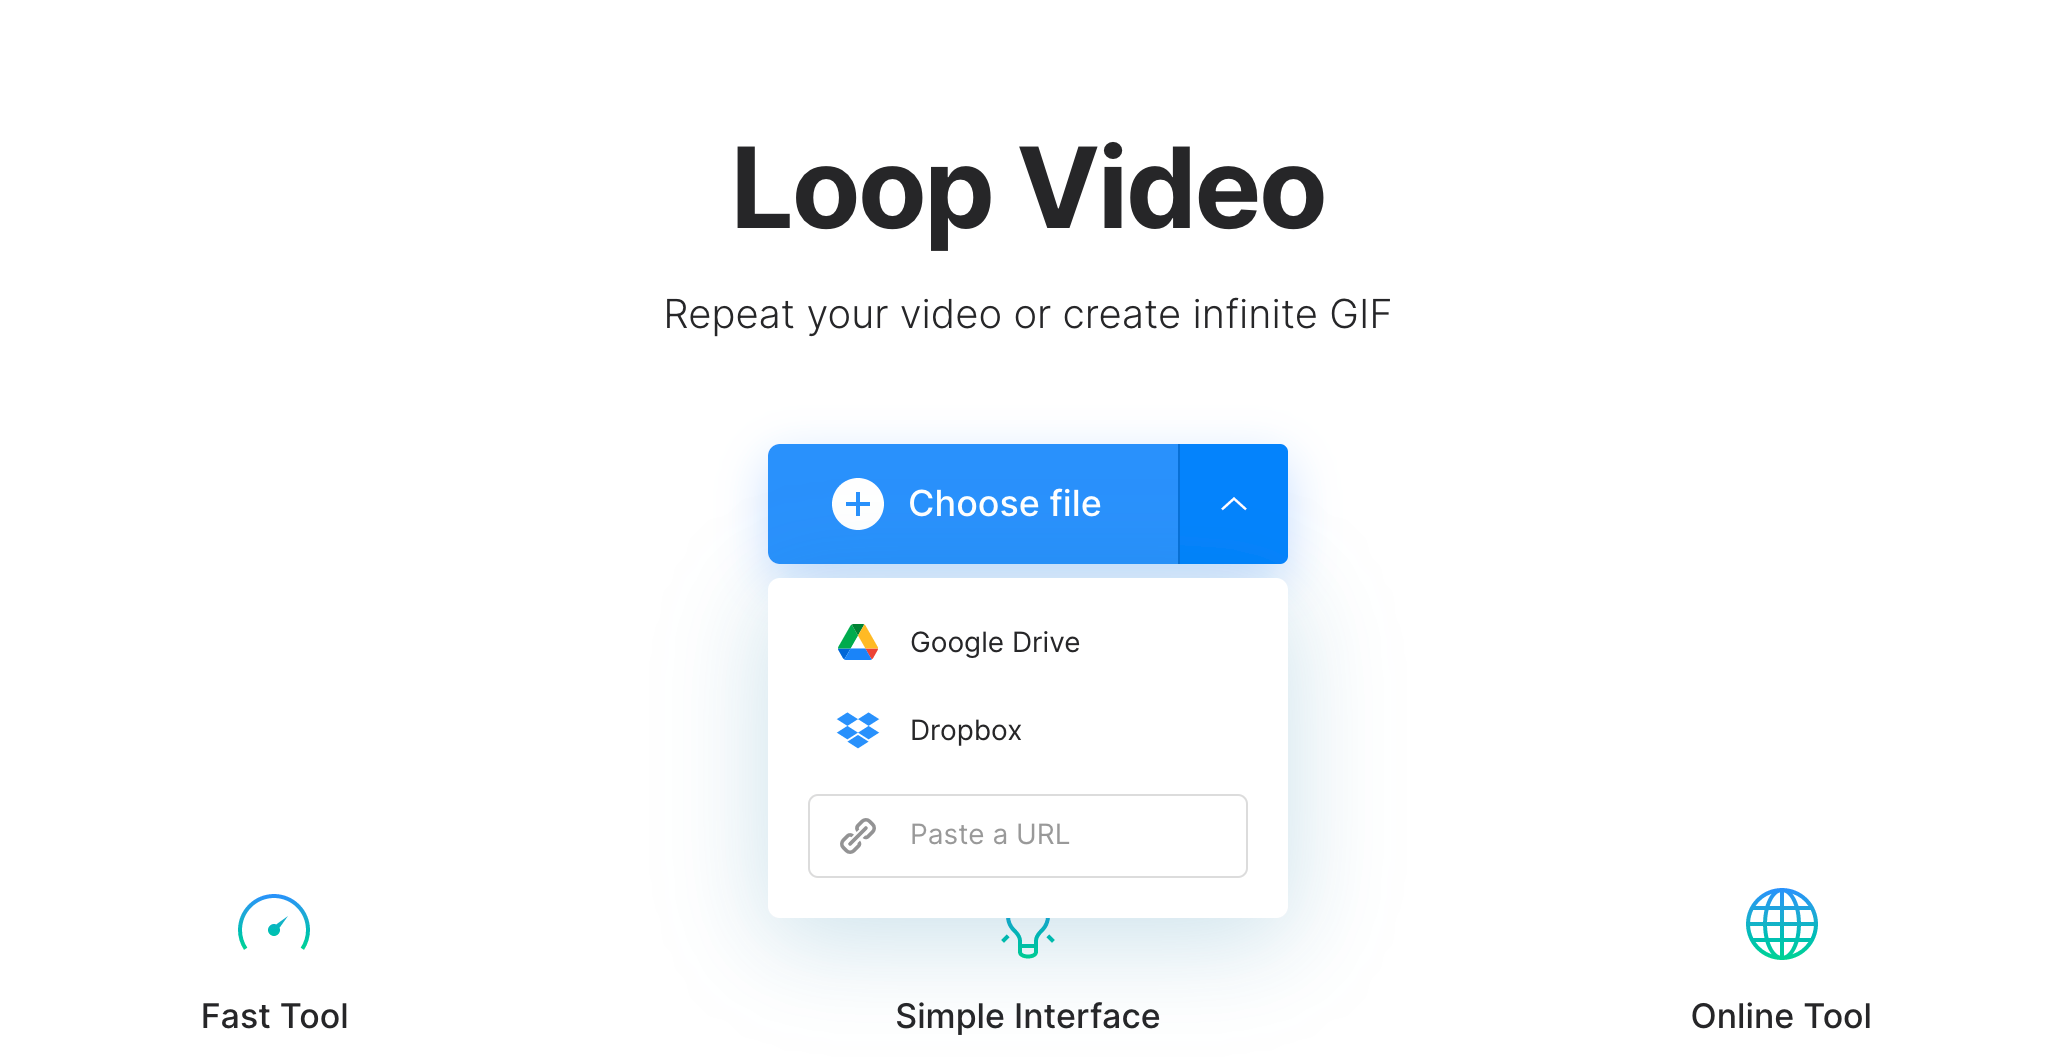 Upload a video to create a GIF